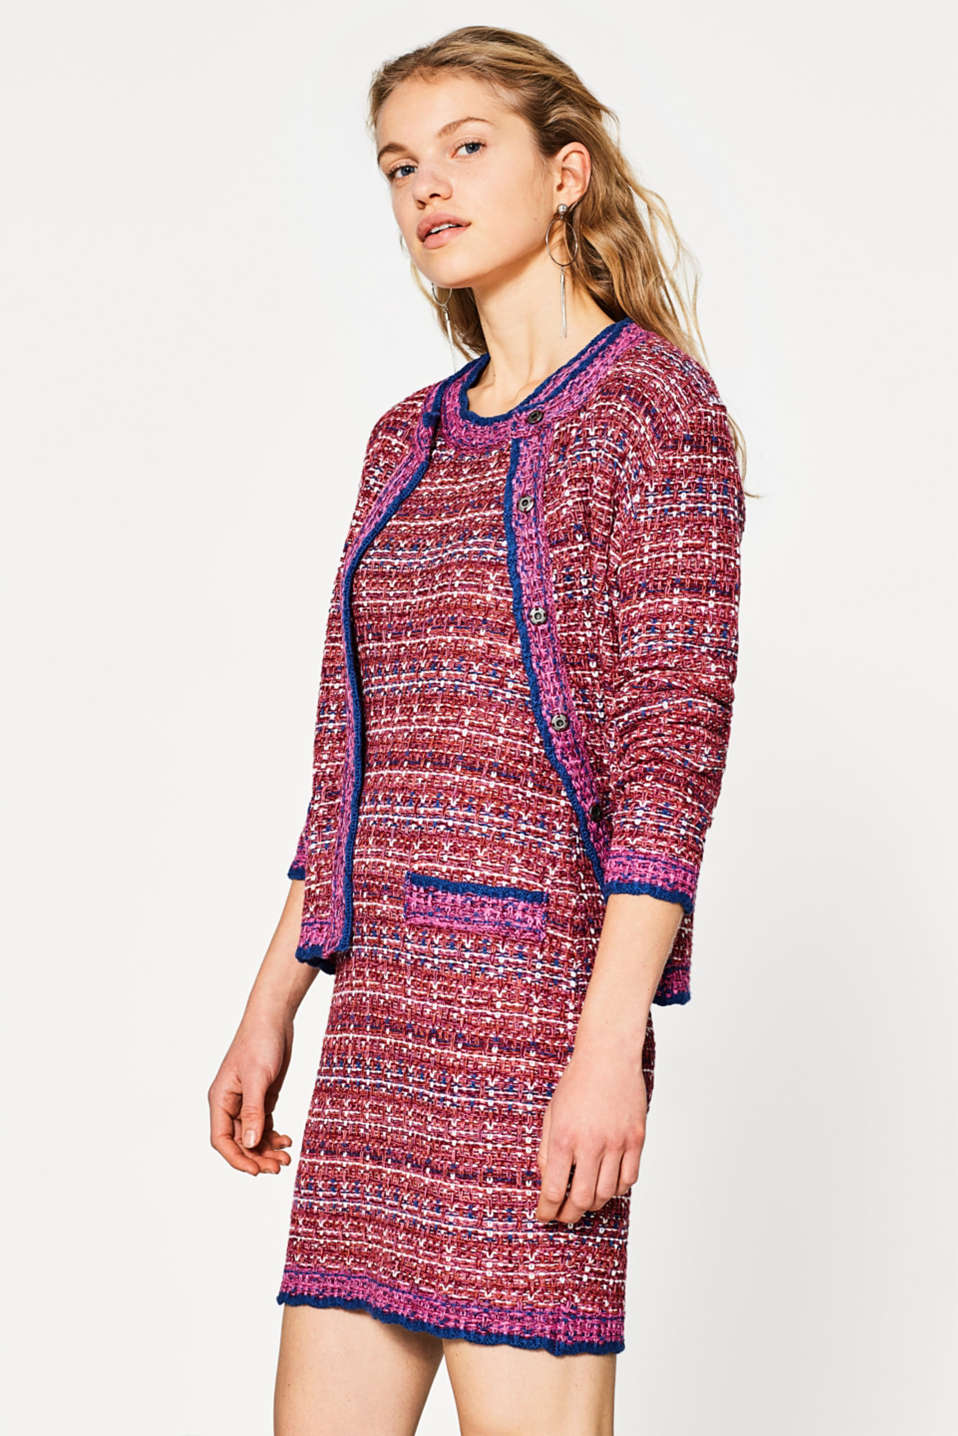 Knitted dress in a tweed look, cotton blend